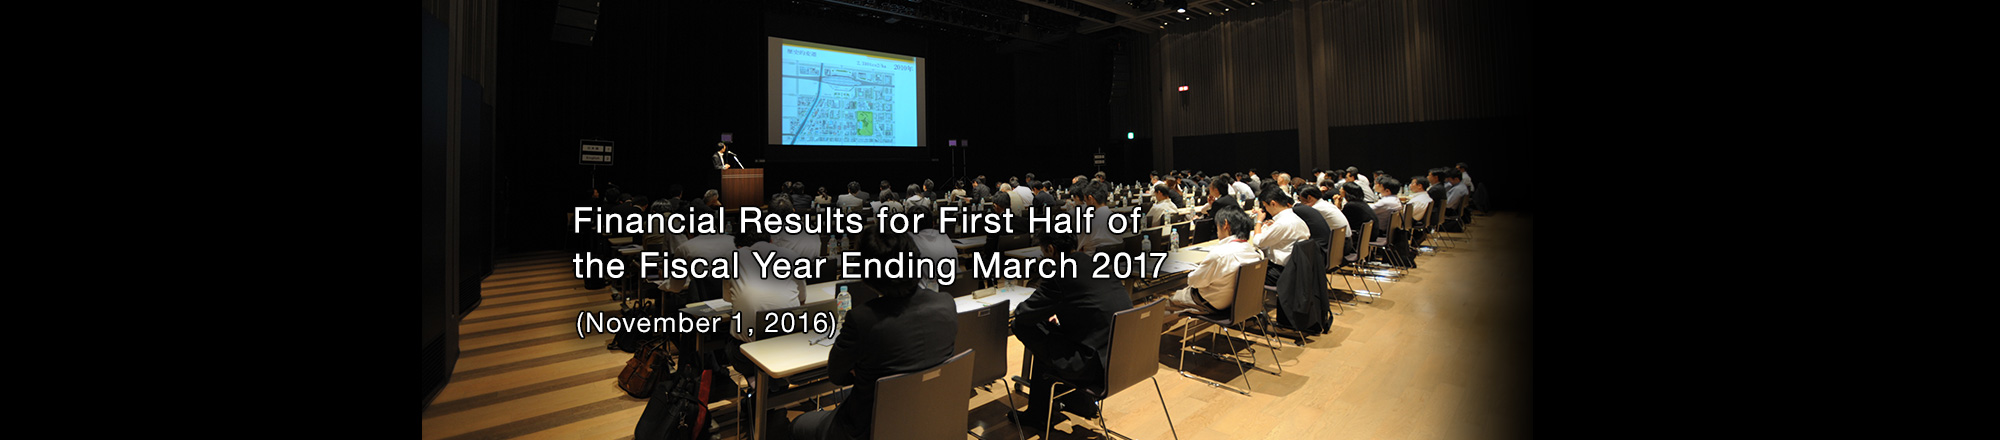 Financial Results for First Half of the Fiscal Year Ending March 2017 (November 1, 2016)